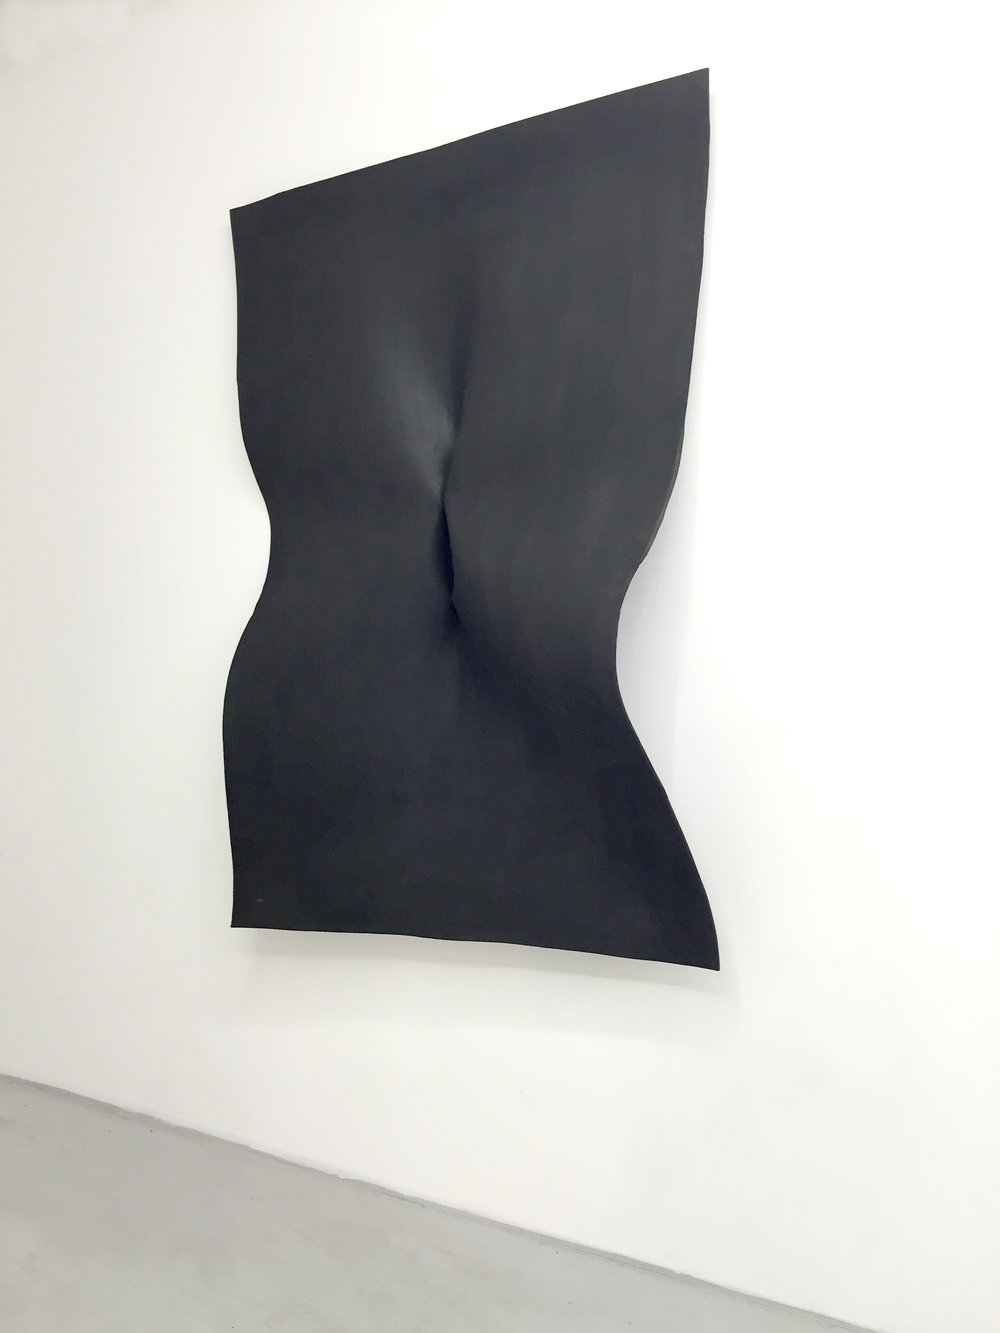 Mahsa Karimizadeh  Untitled  From the Pinch series  2016  Sculpture, unique piece  Foam   130cm x 90cm